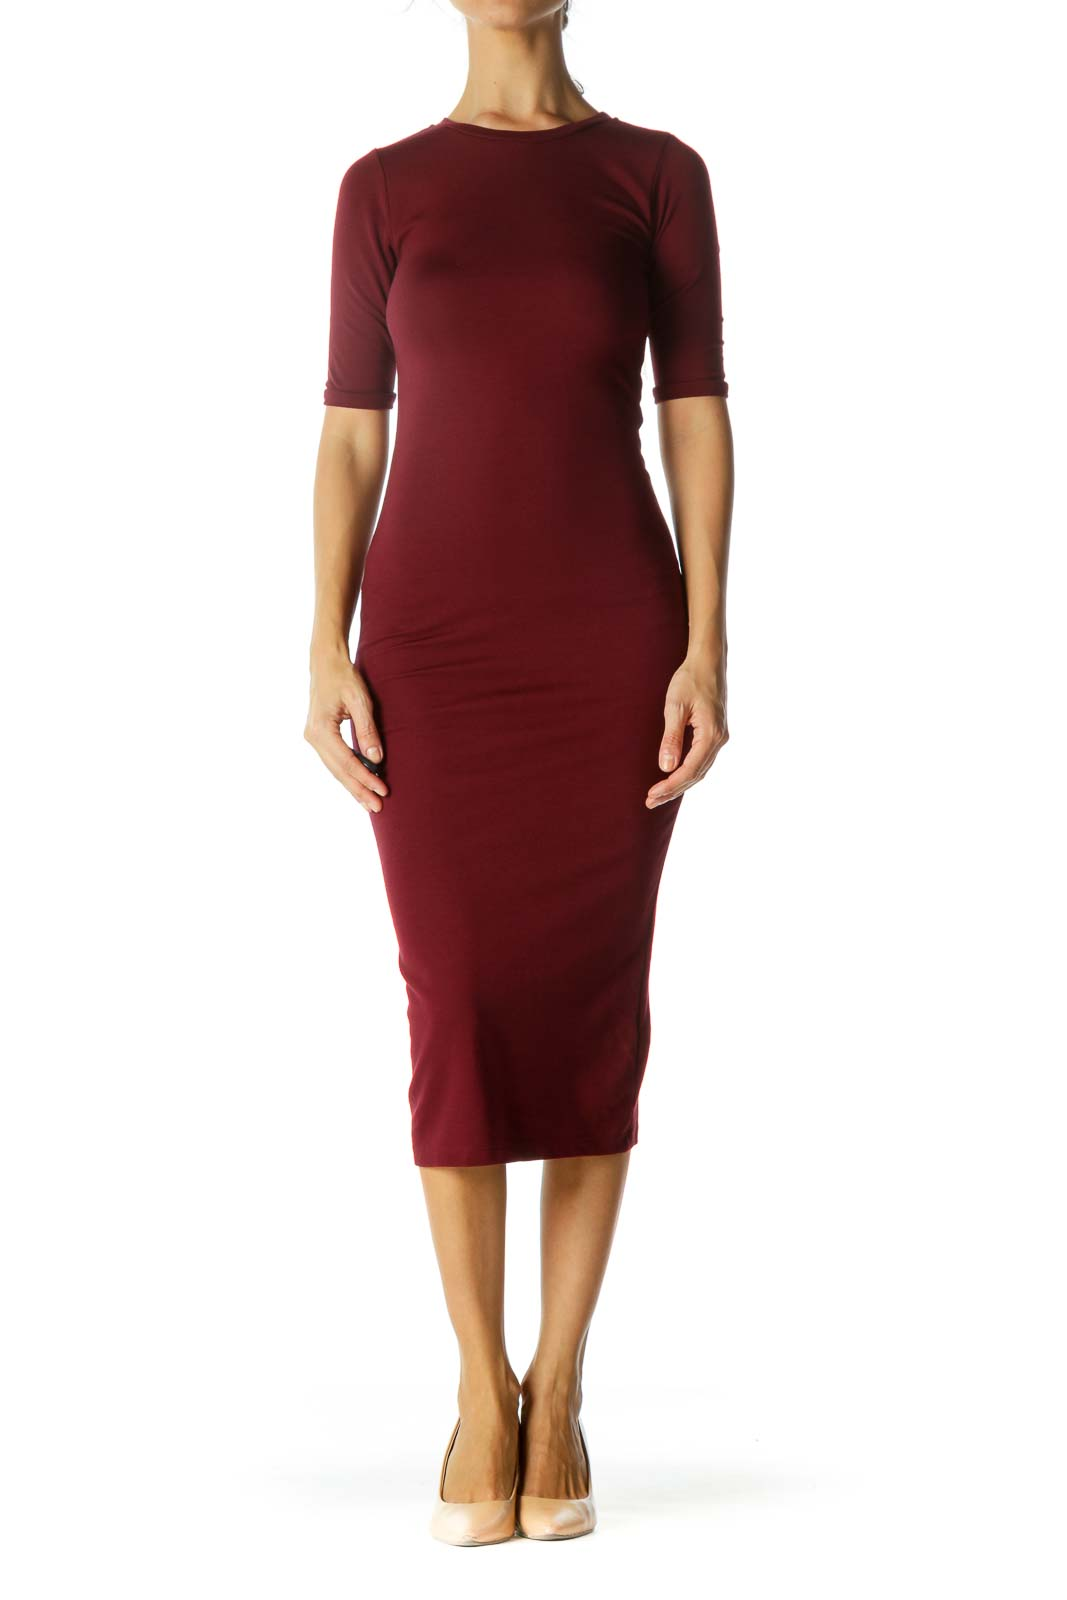 Burgundy Fitted Mid Dress